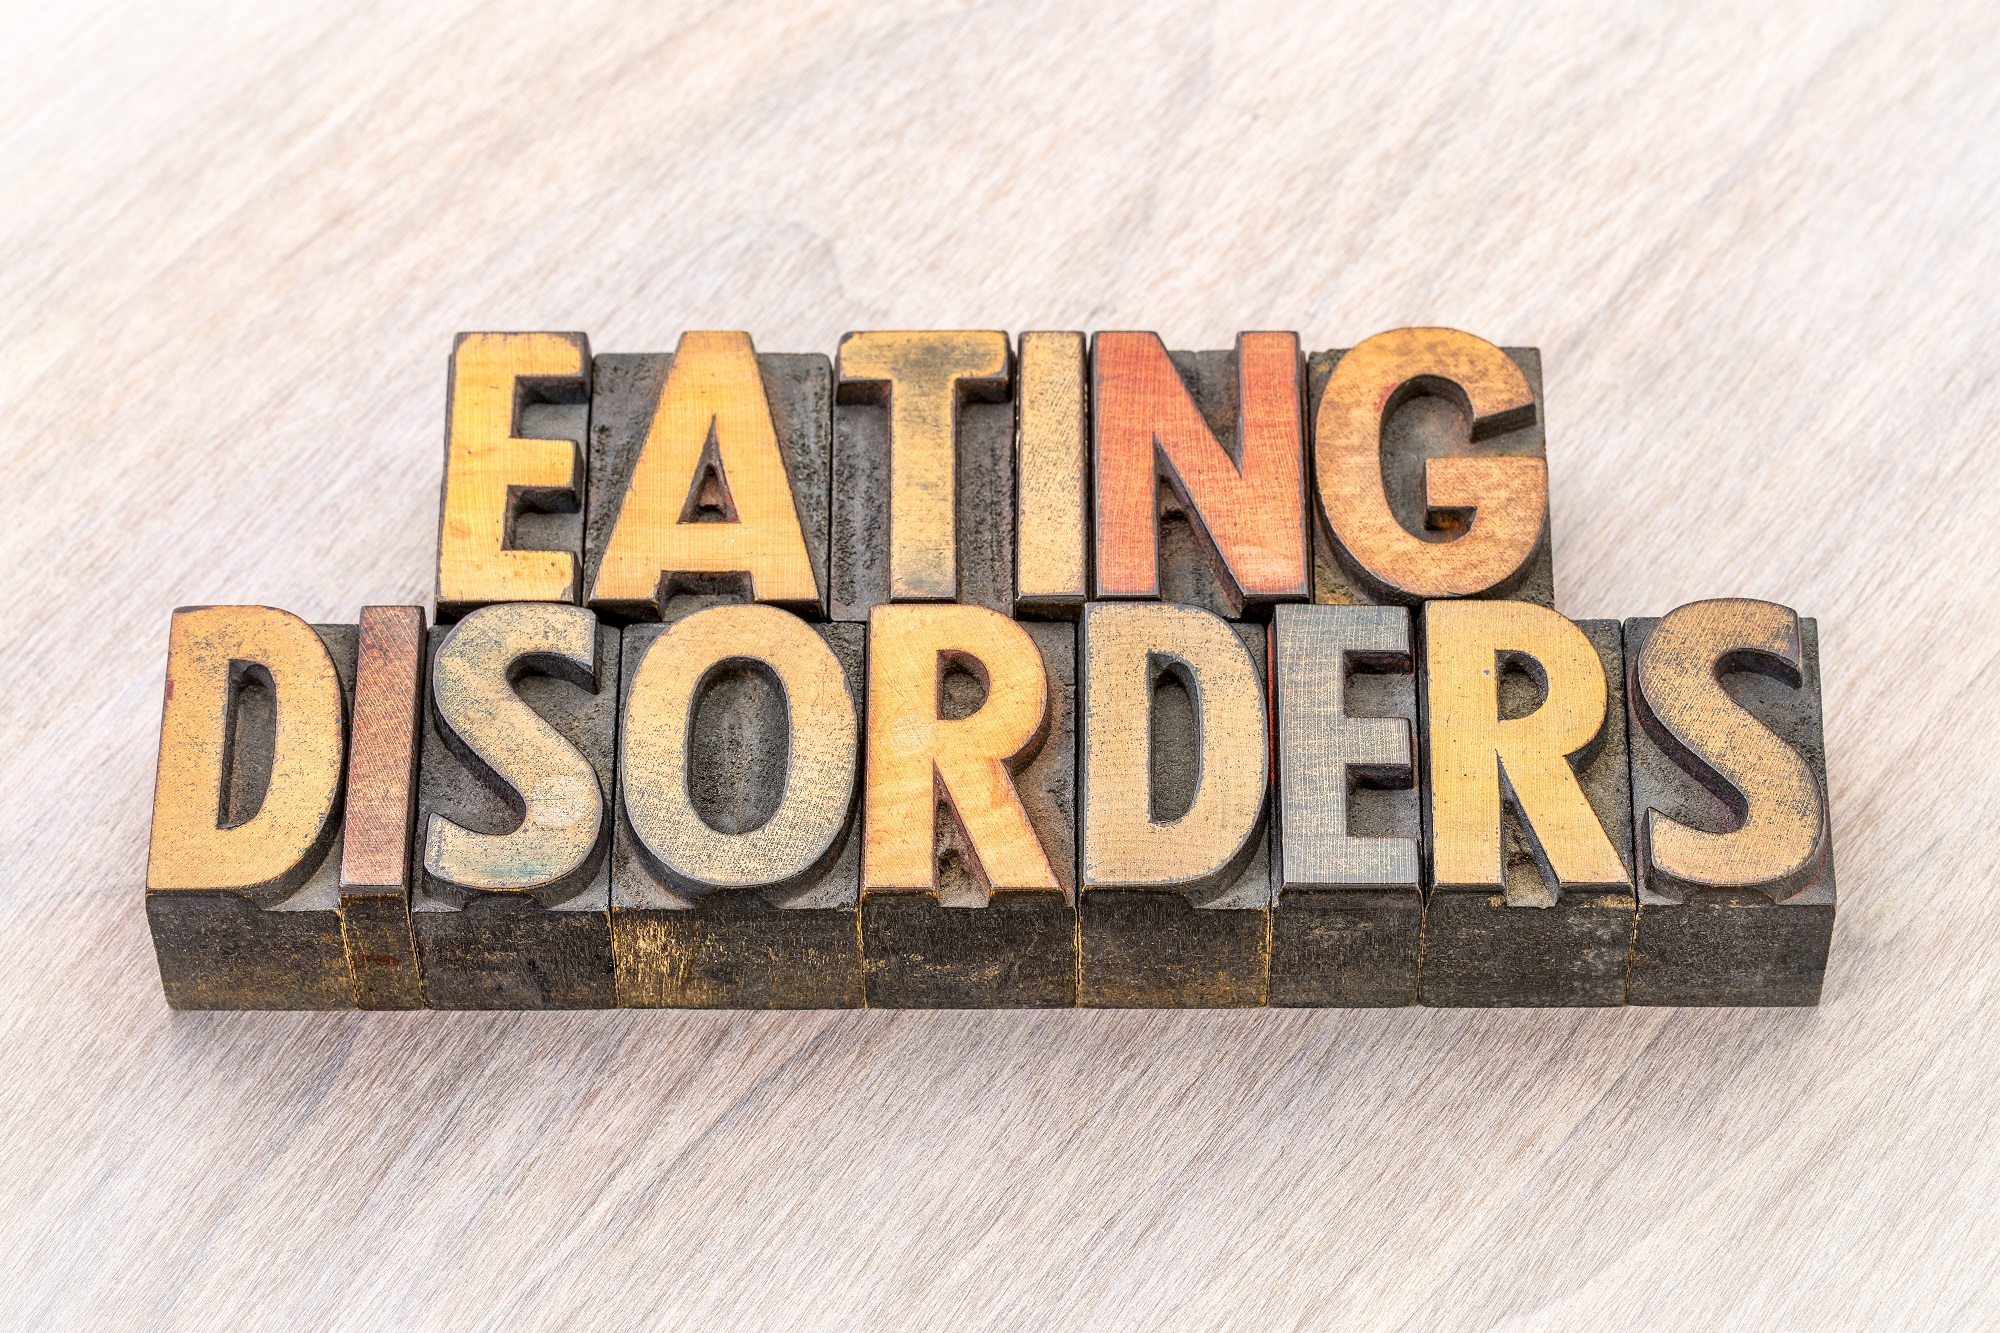 Eating Disorder Prevalence In Children Age 9 To 10 Shows